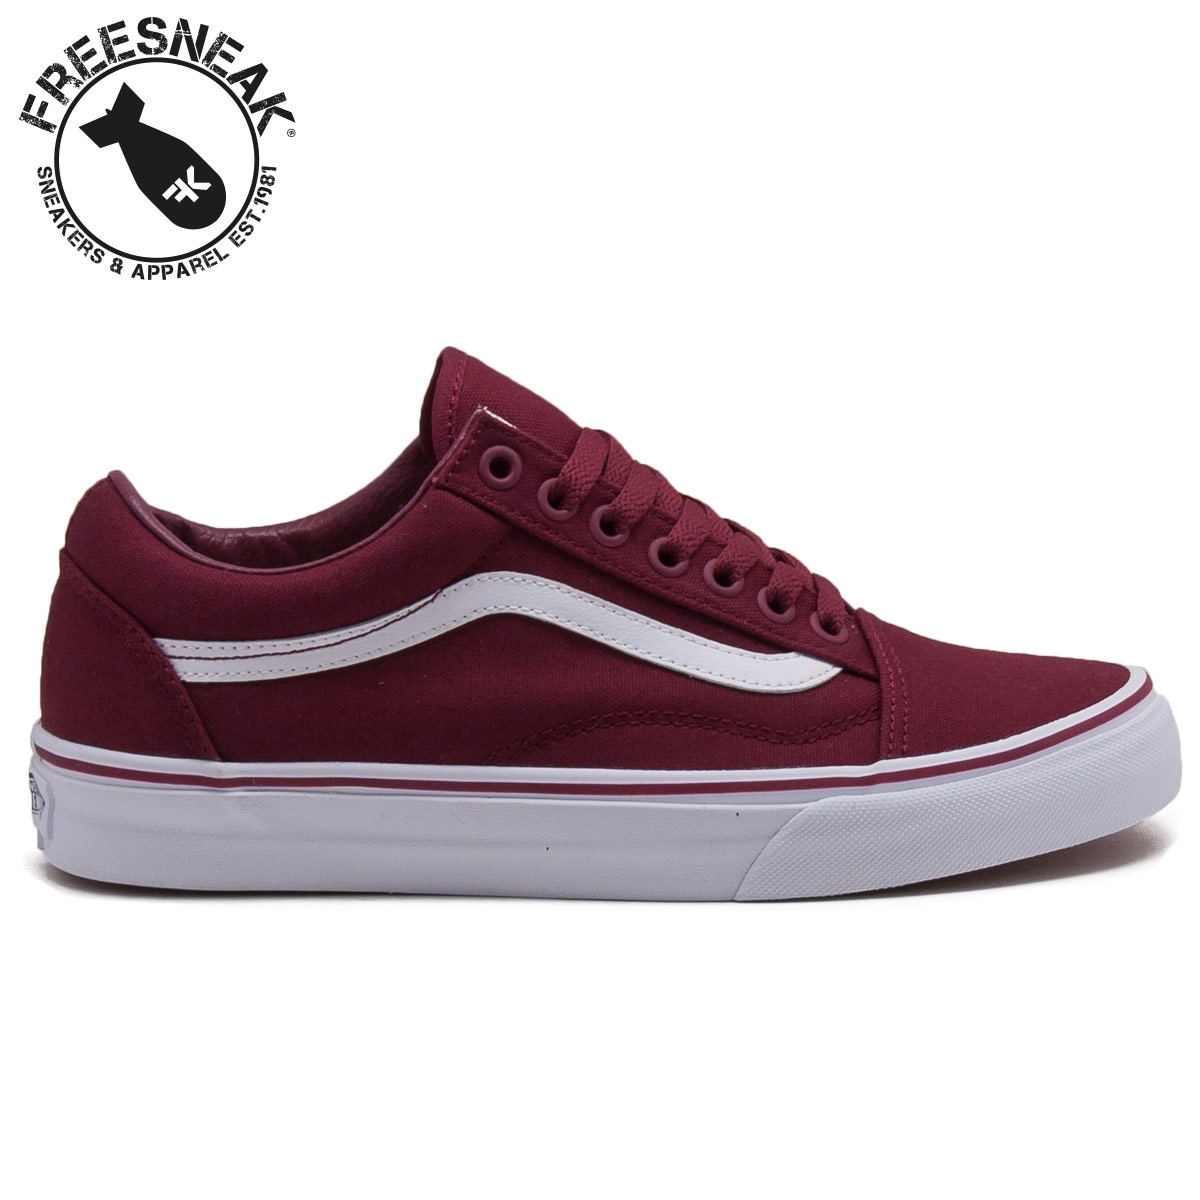 old skool vans alte